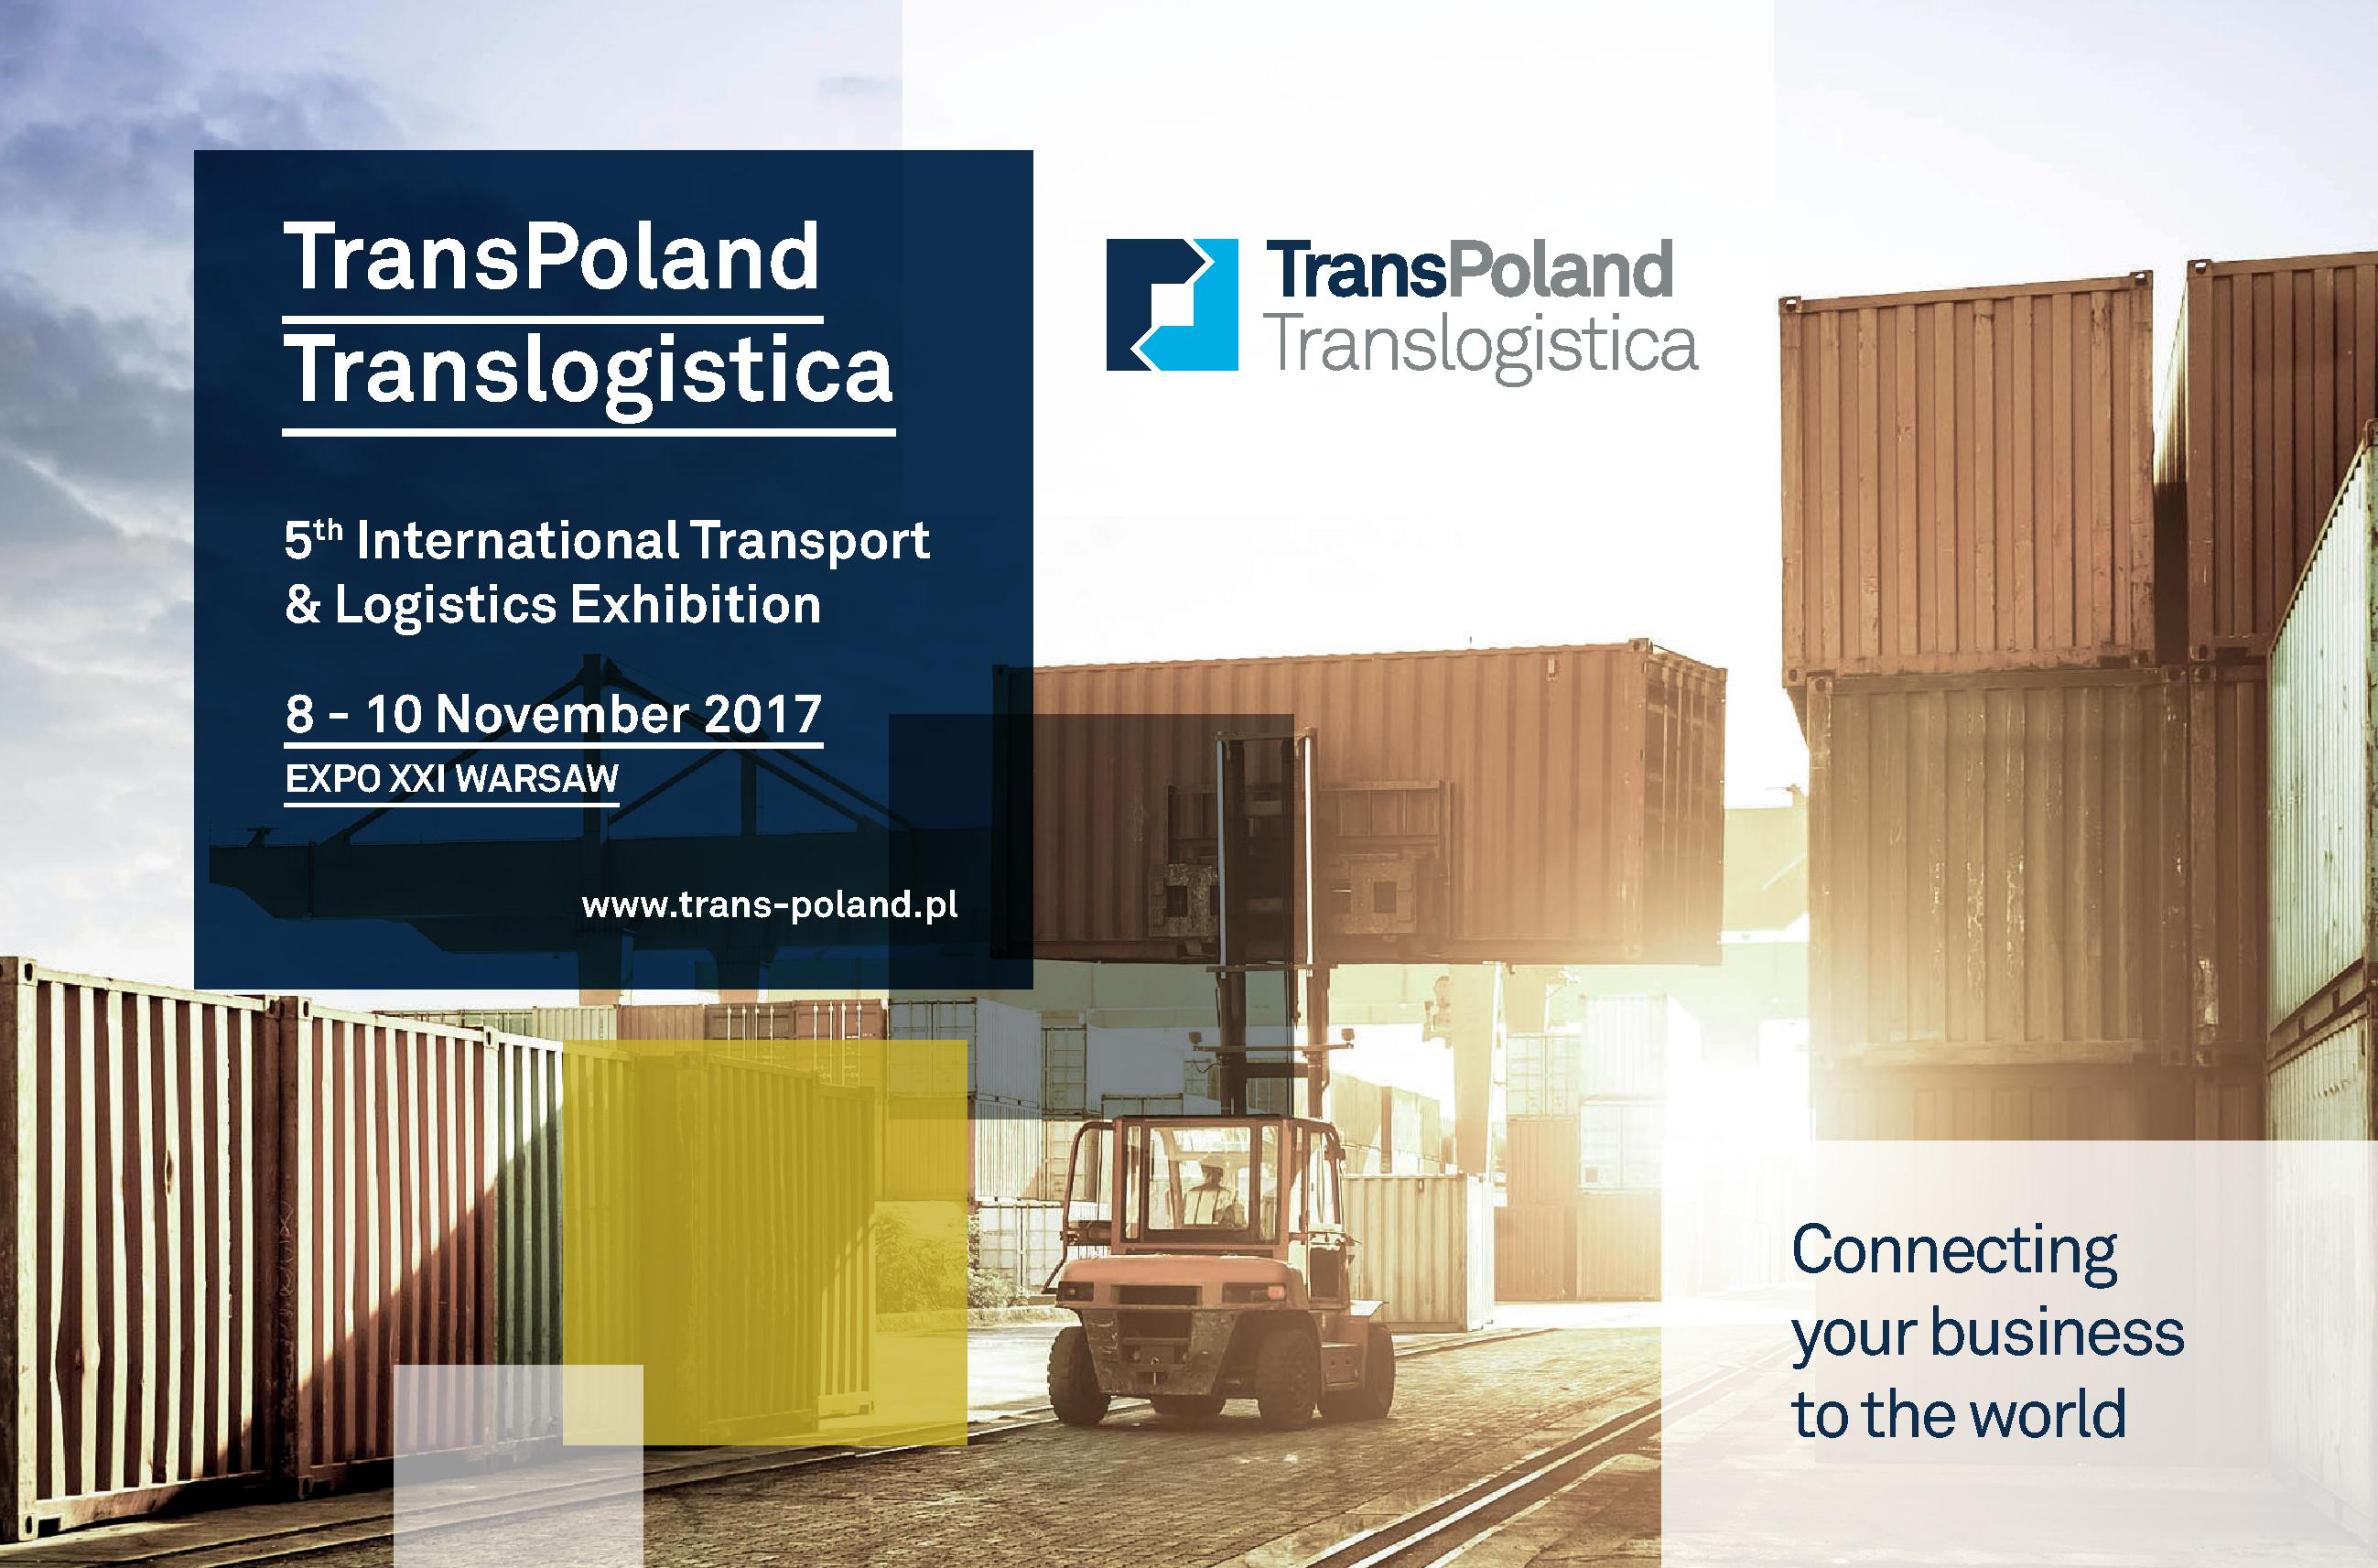 5th edition of TransPoland Translogistica – Transport and Logistics Business to meet in Warsaw on 8-10 November 2017